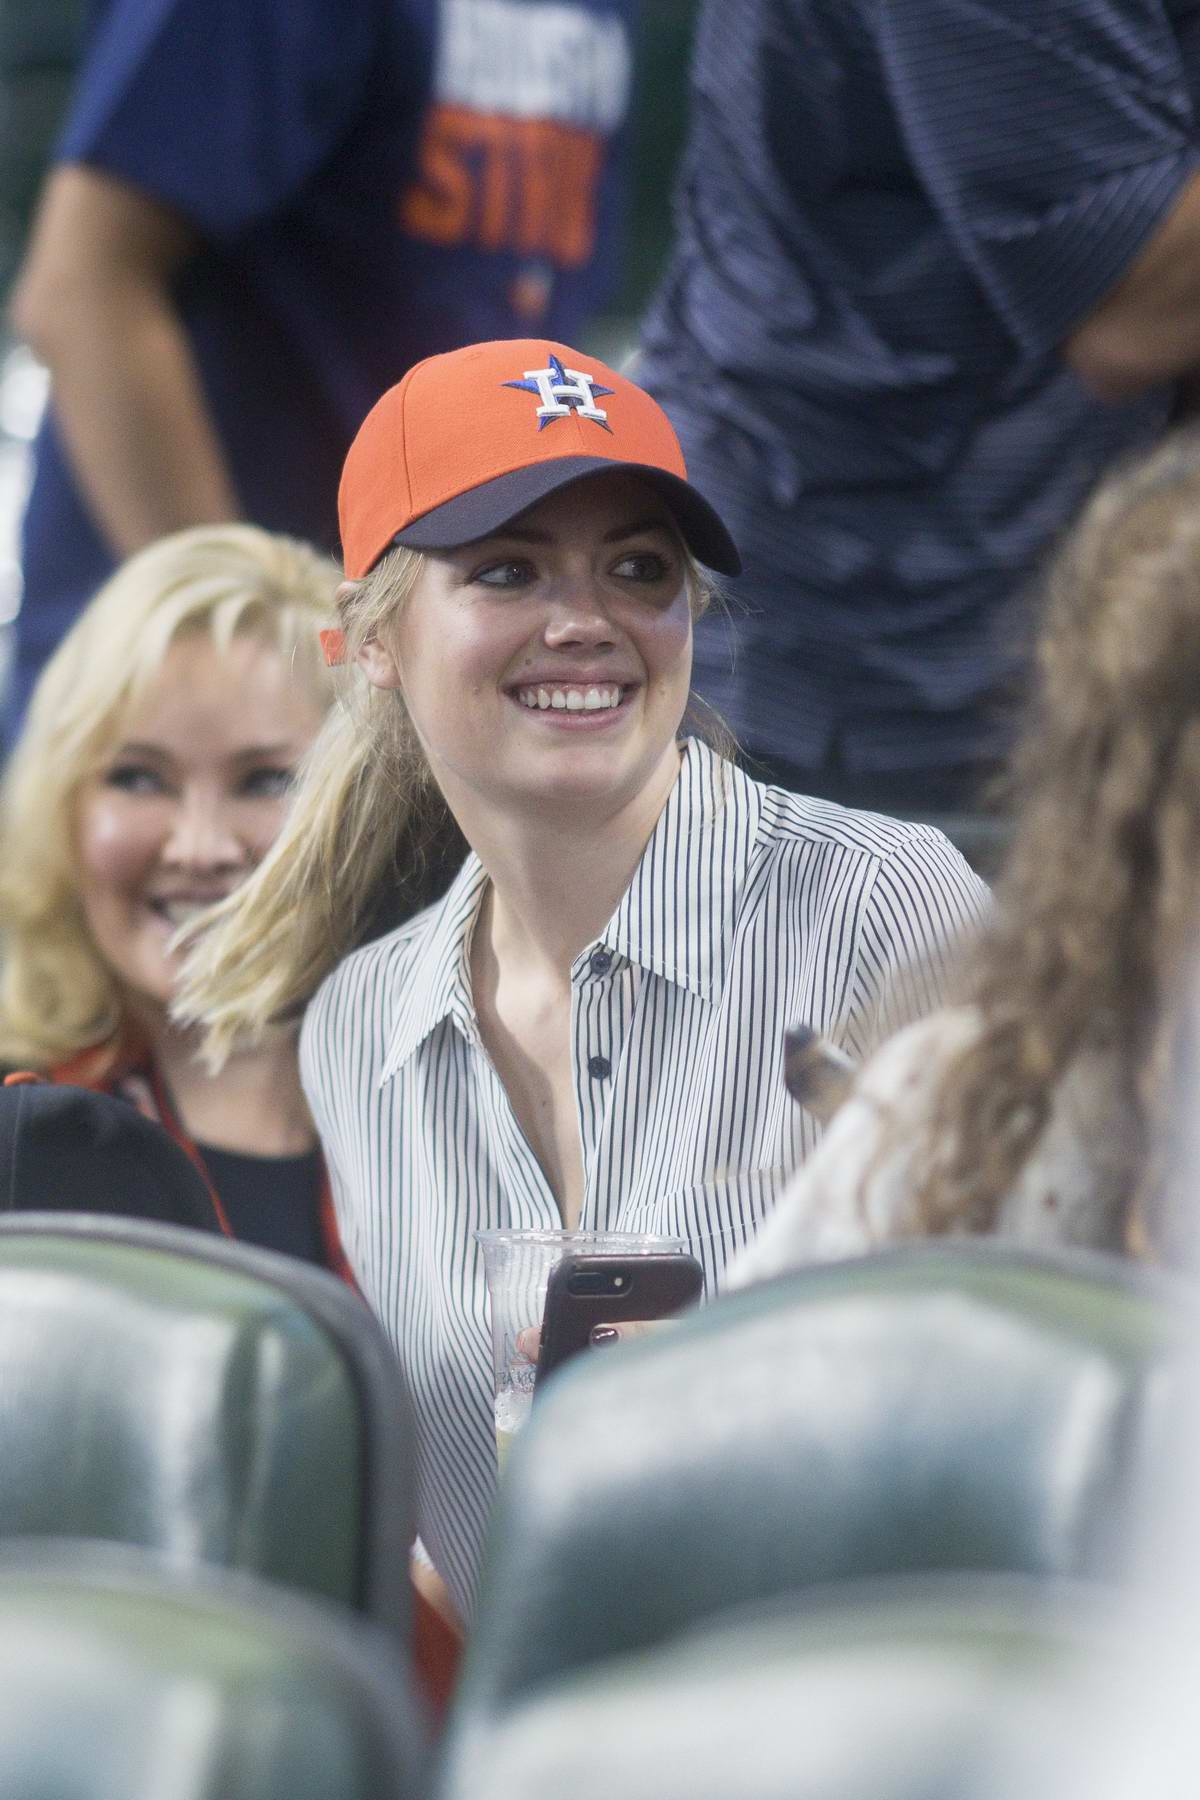 Kate Upton at a baseball game in Maid Park in Texas